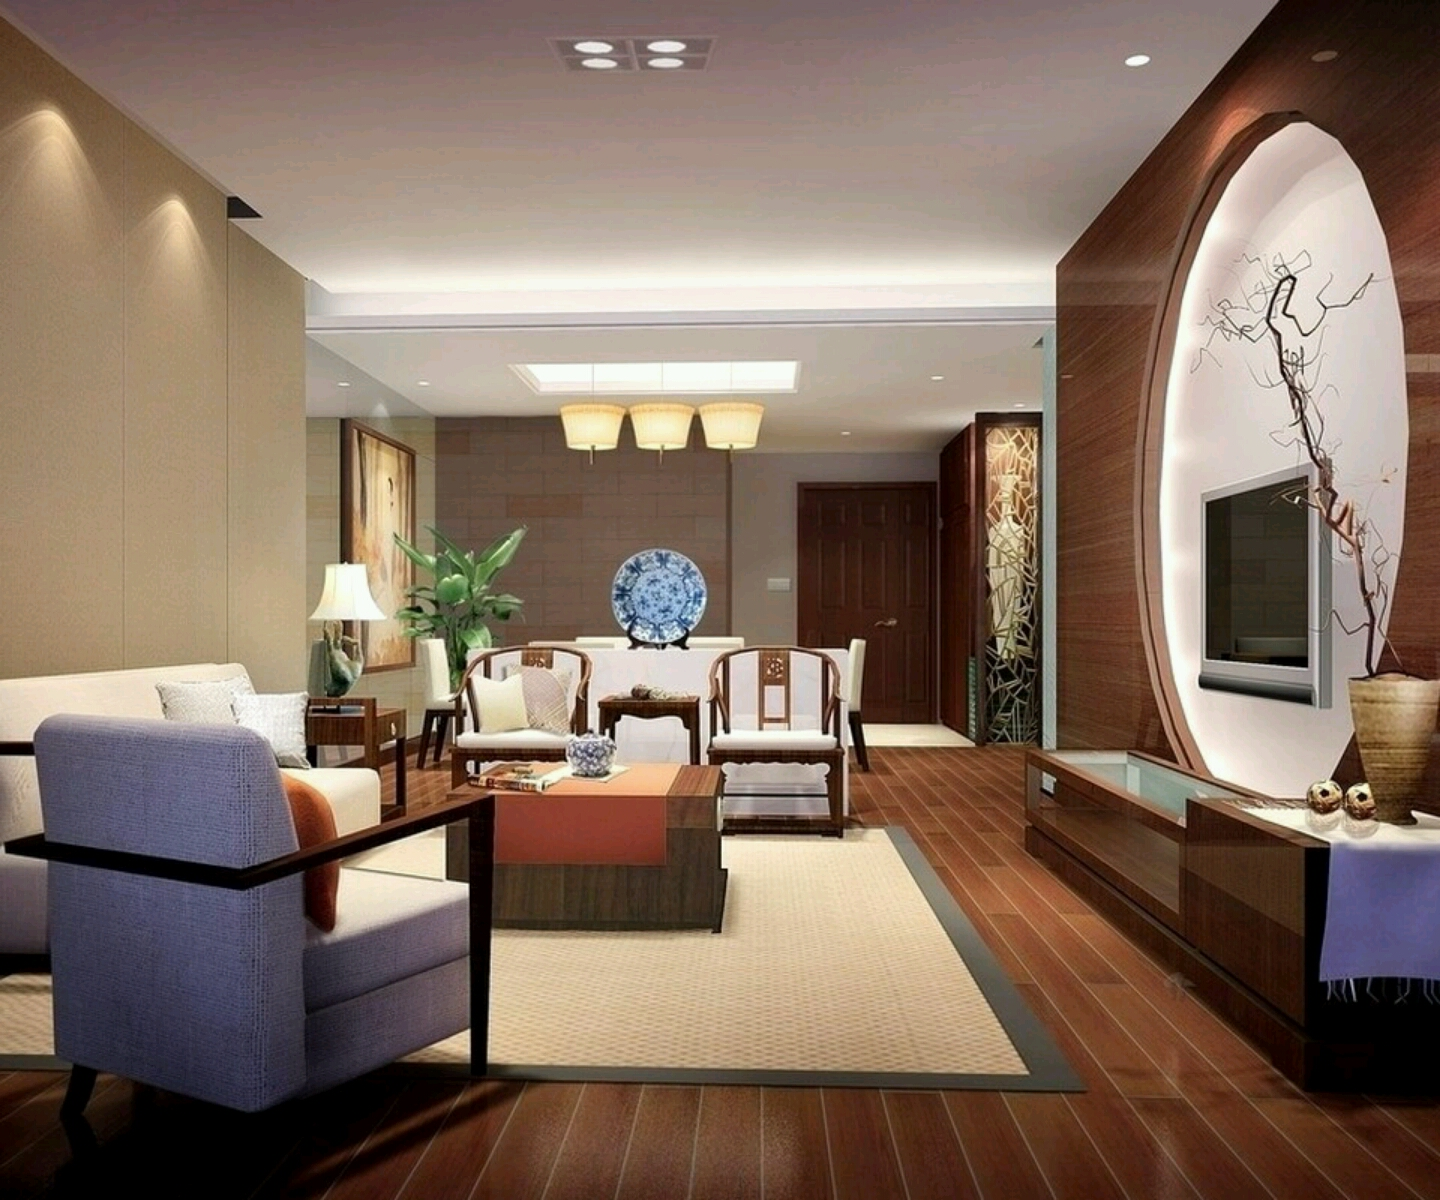 Luxury homes interior decoration living room designs ideas for Deco interior design